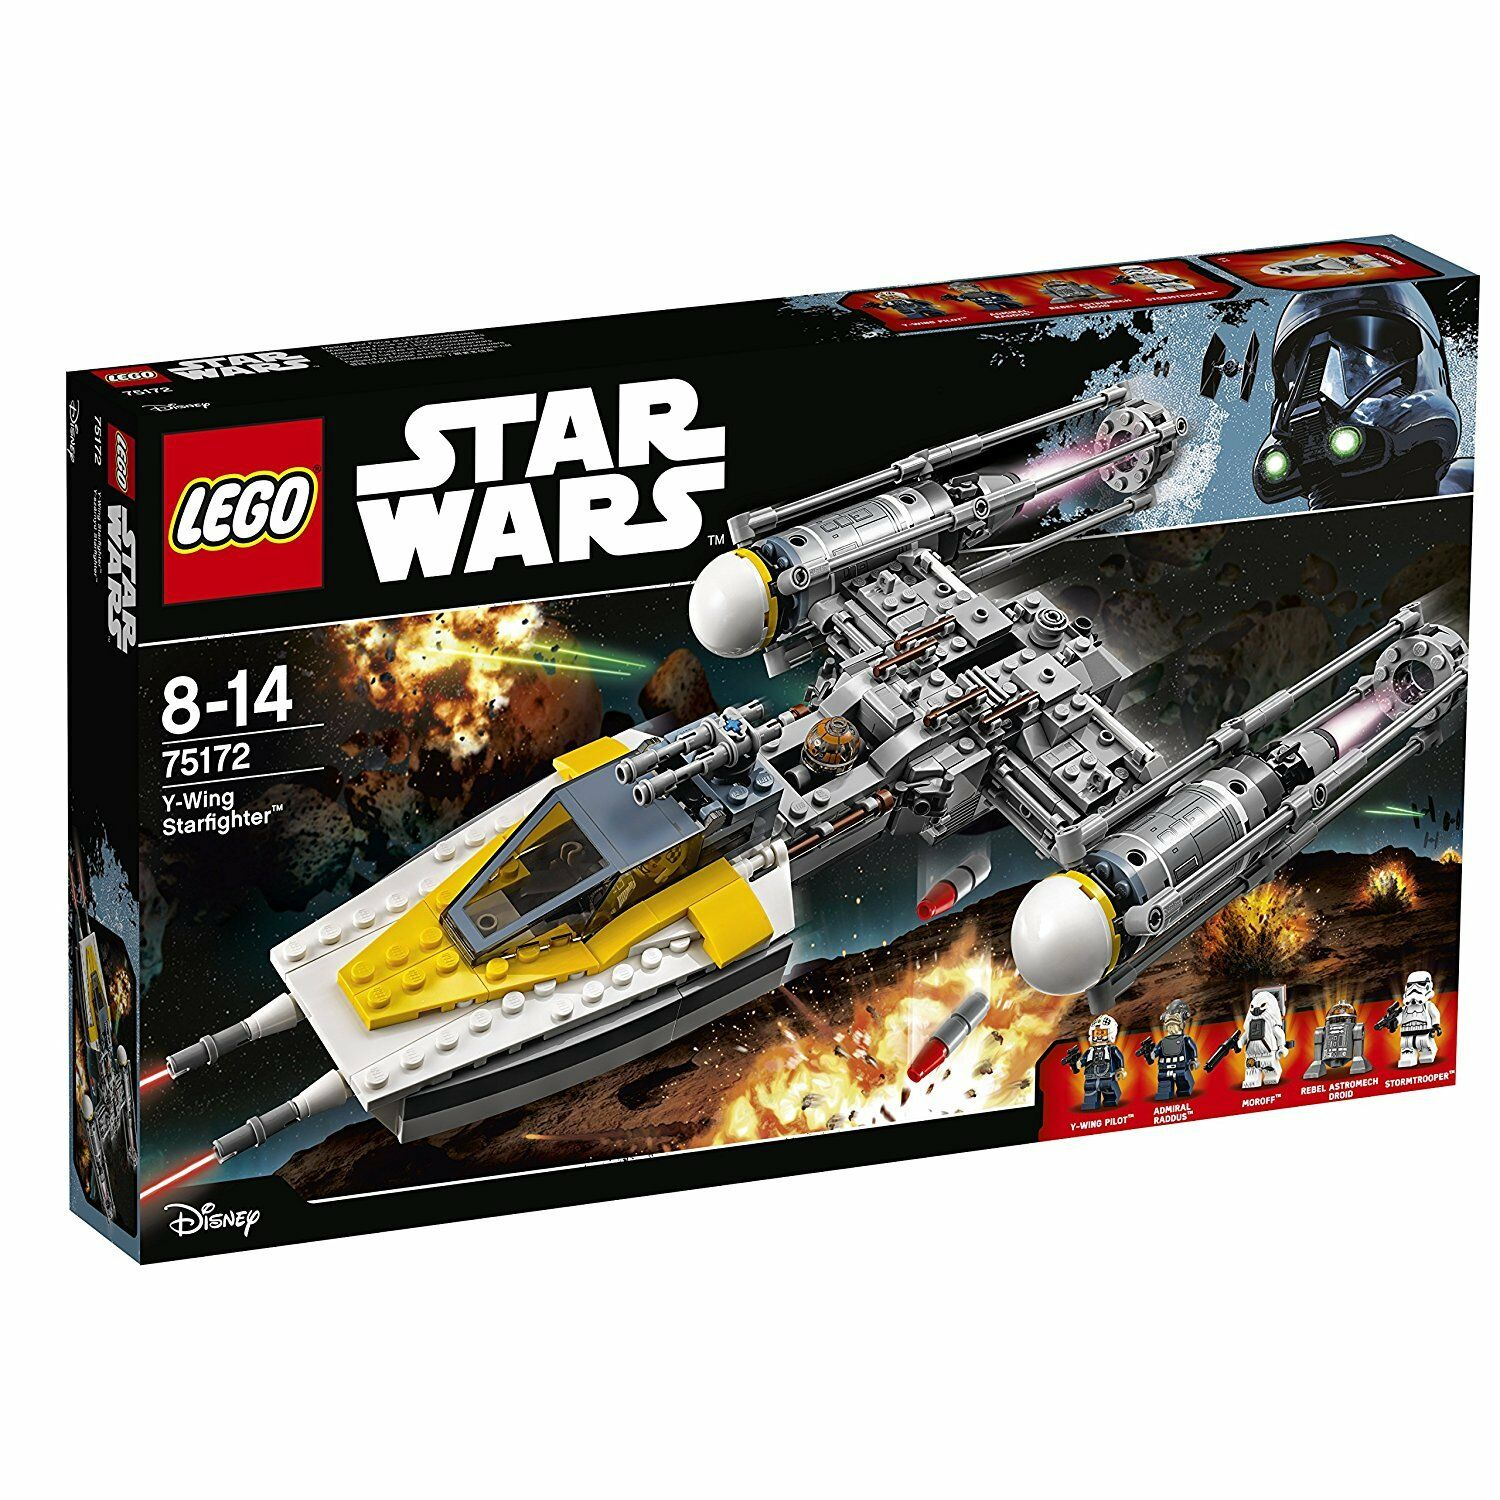 NEW LEGO Star Wars Y Wing Starfighter 75172 691 piece from Japan F S